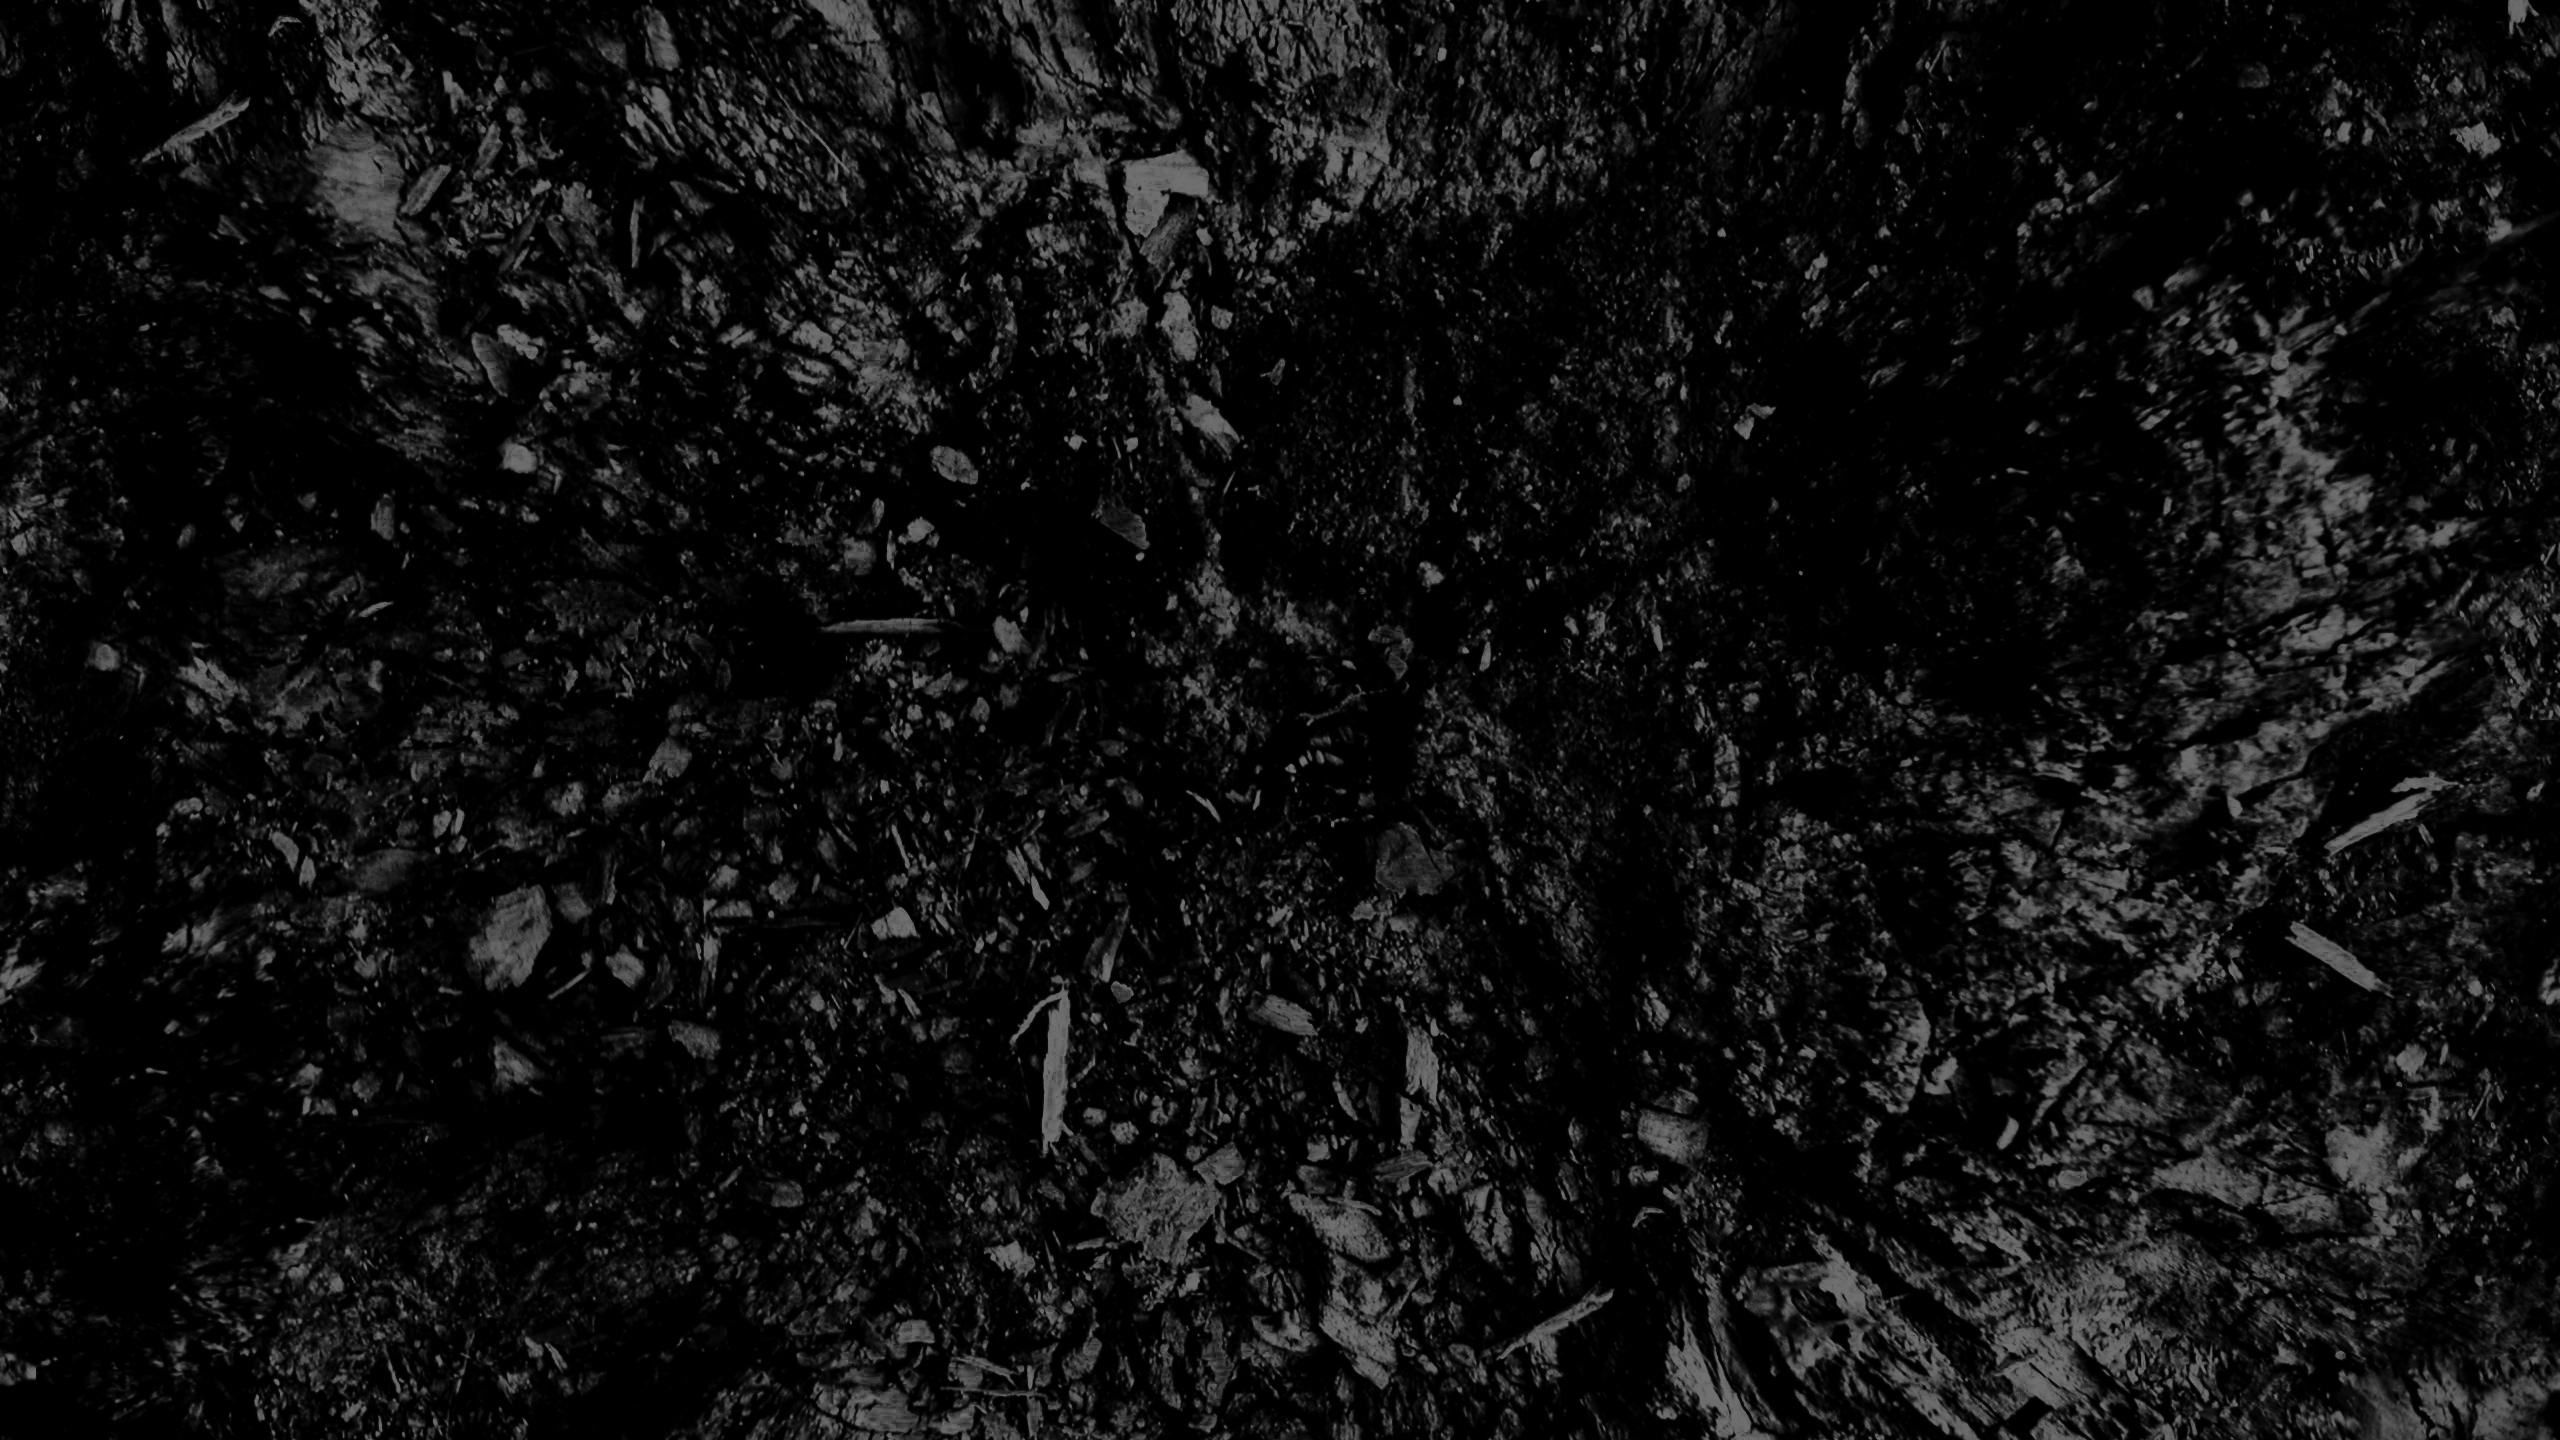 2560x1440 Wallpaper Dark Black And White Abstract Black